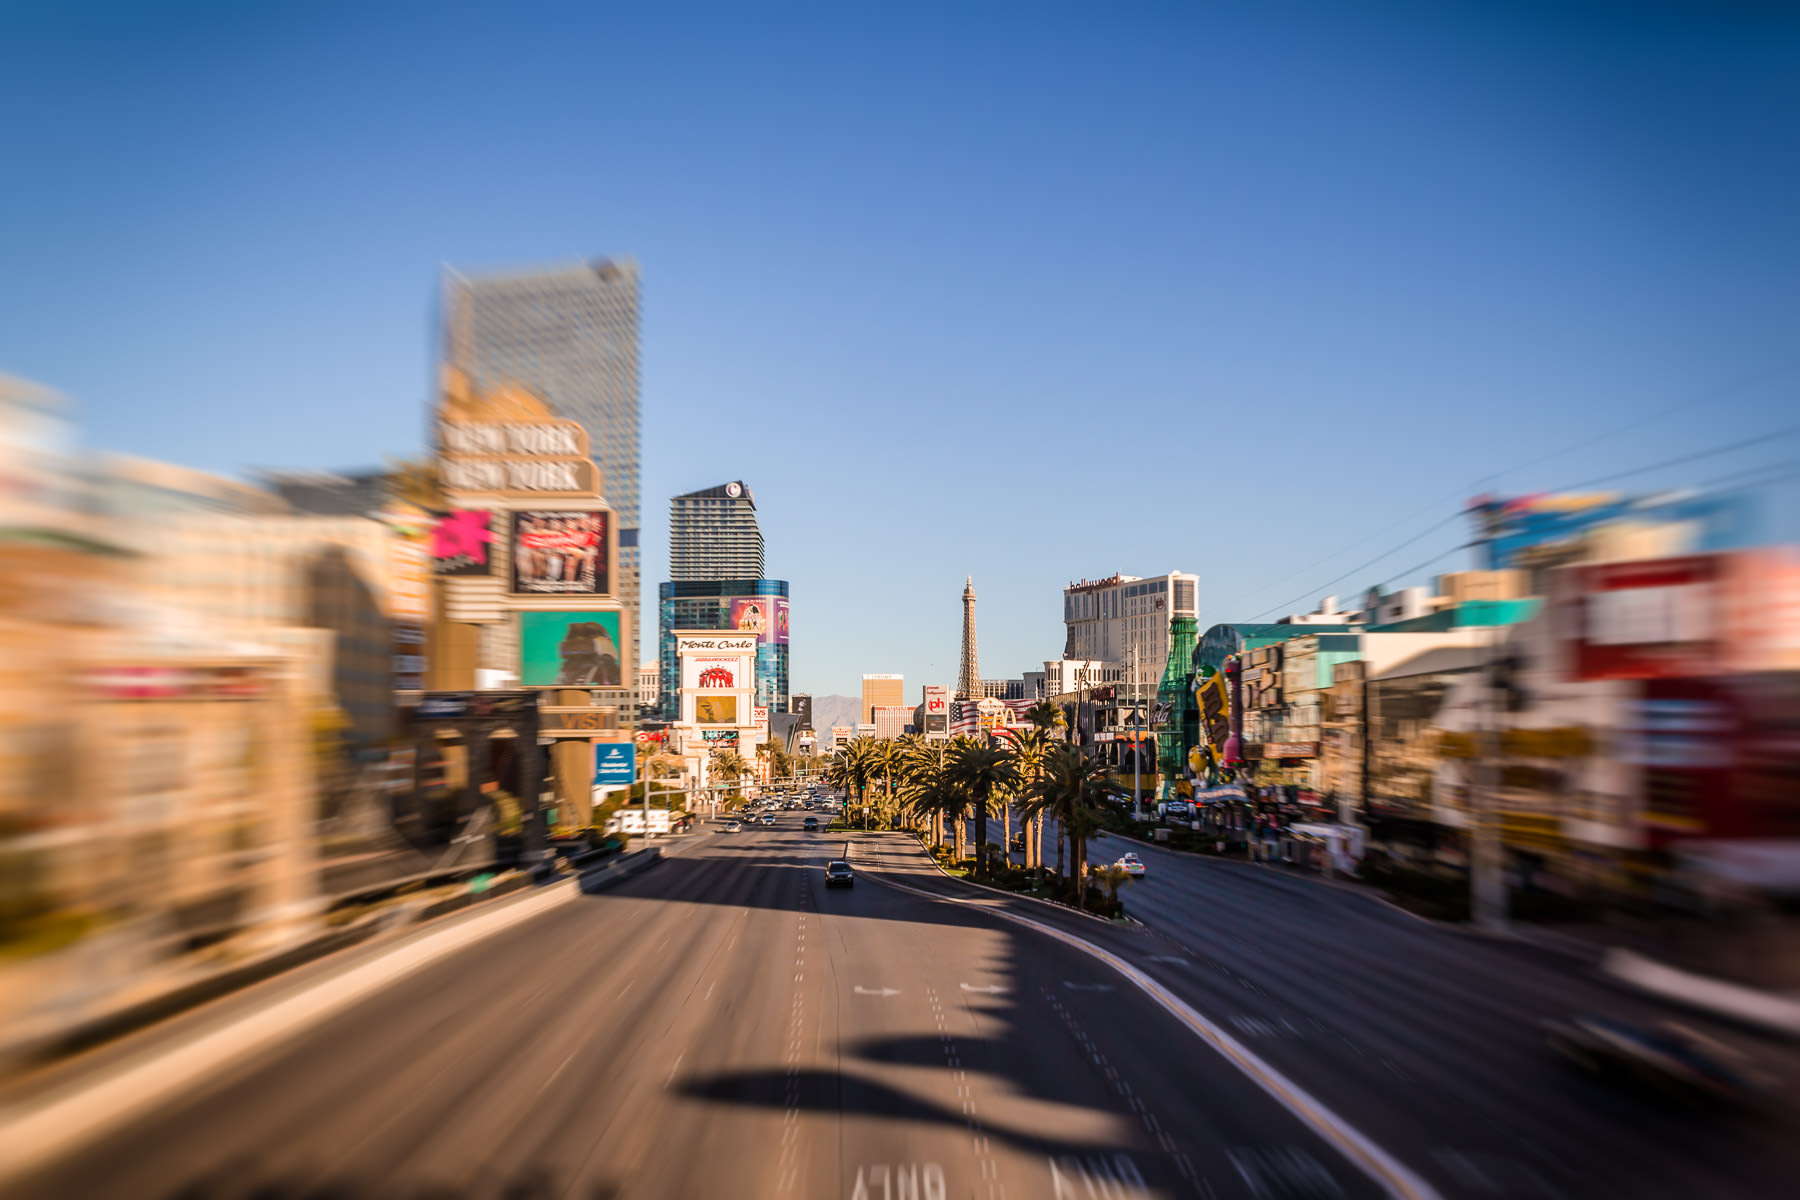 The Las Vegas Strip, as seen from a pedestrian bridge near New York New York Hotel & Casino.